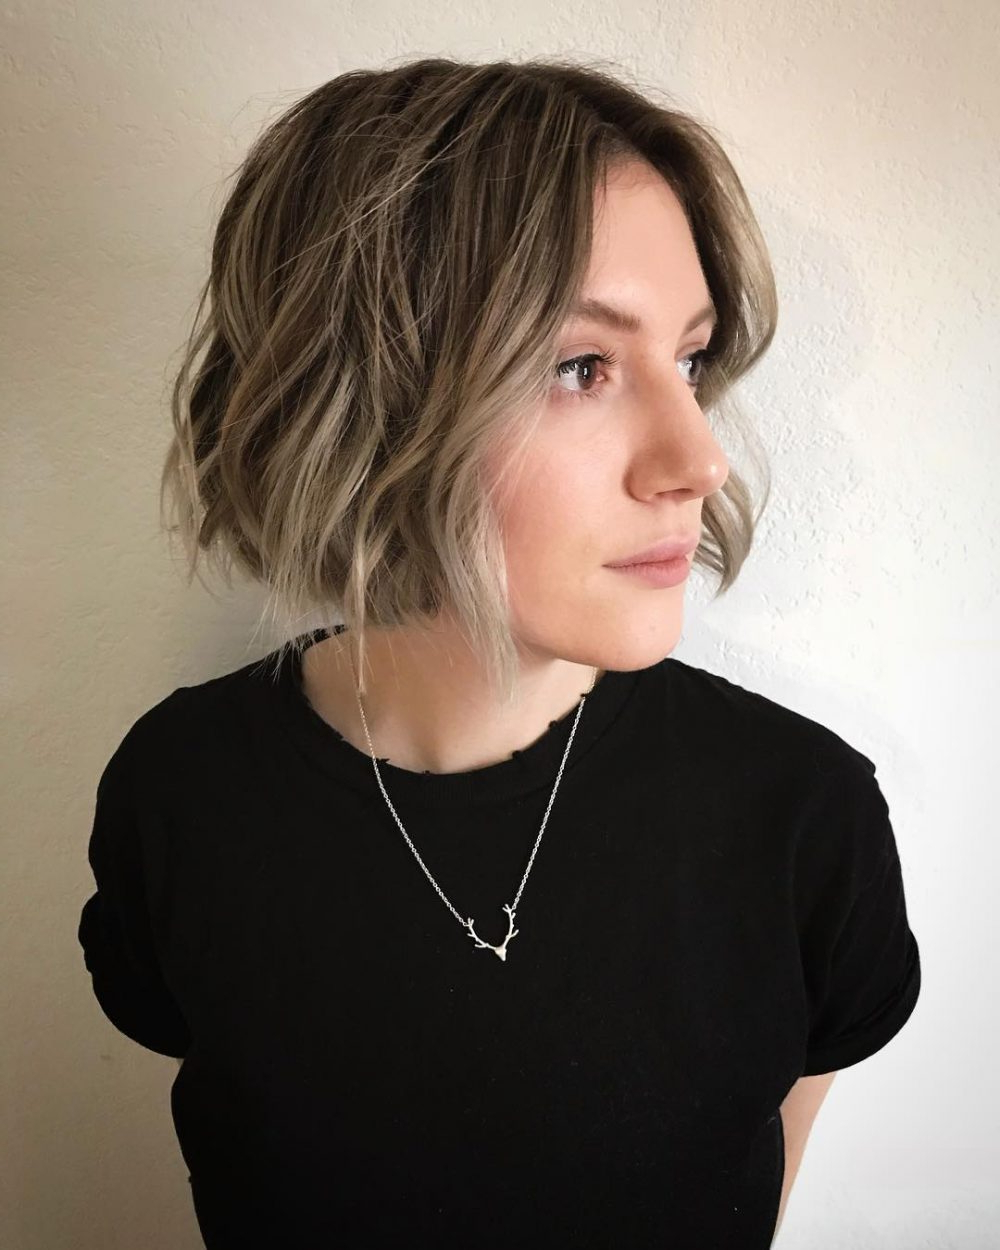 25 Chin Length Bob Hairstyles That Will Stun You (2018 Trends) With Jaw Length Inverted Curly Brunette Bob Hairstyles (View 9 of 20)